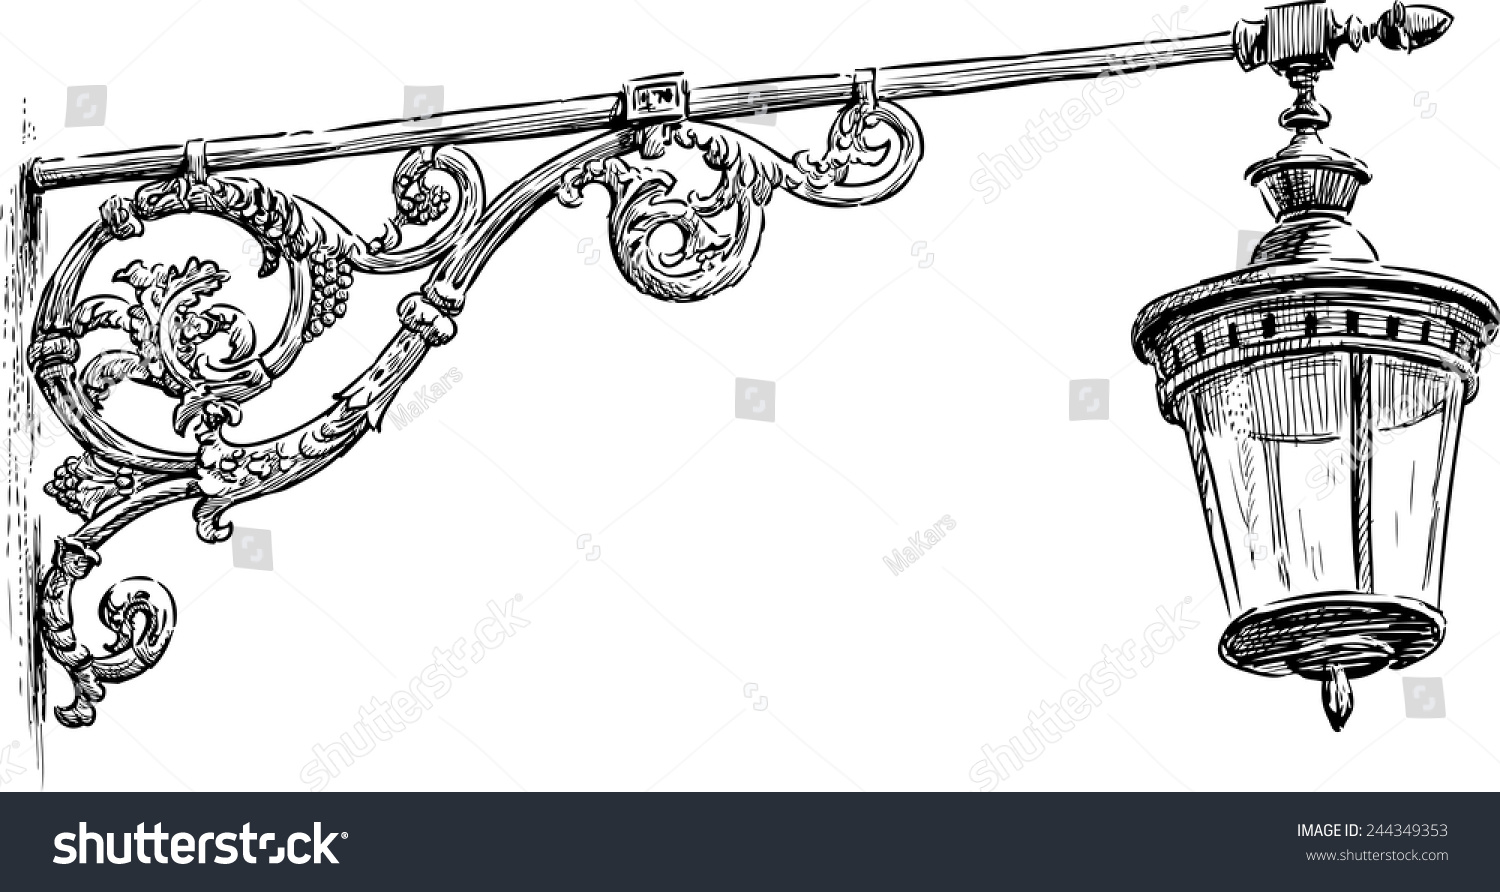 Old Street Lamp Stock Vector 244349353 - Shutterstock for Street Lamp Drawing  117dqh